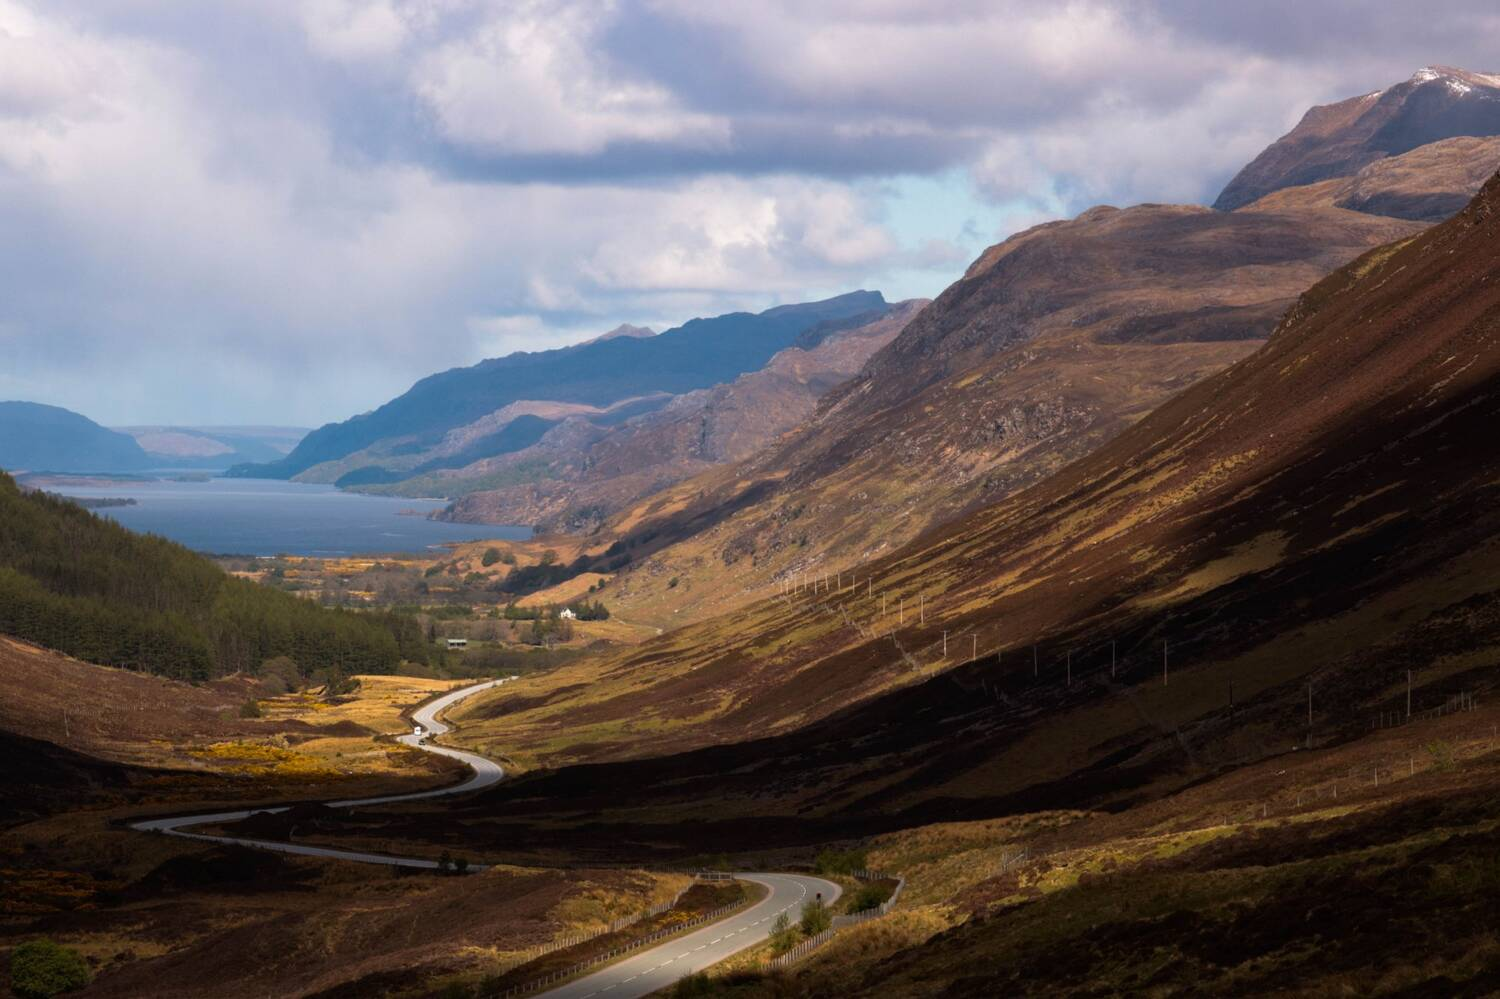 A view from a mountain pass looking down a winding road towards a loch.